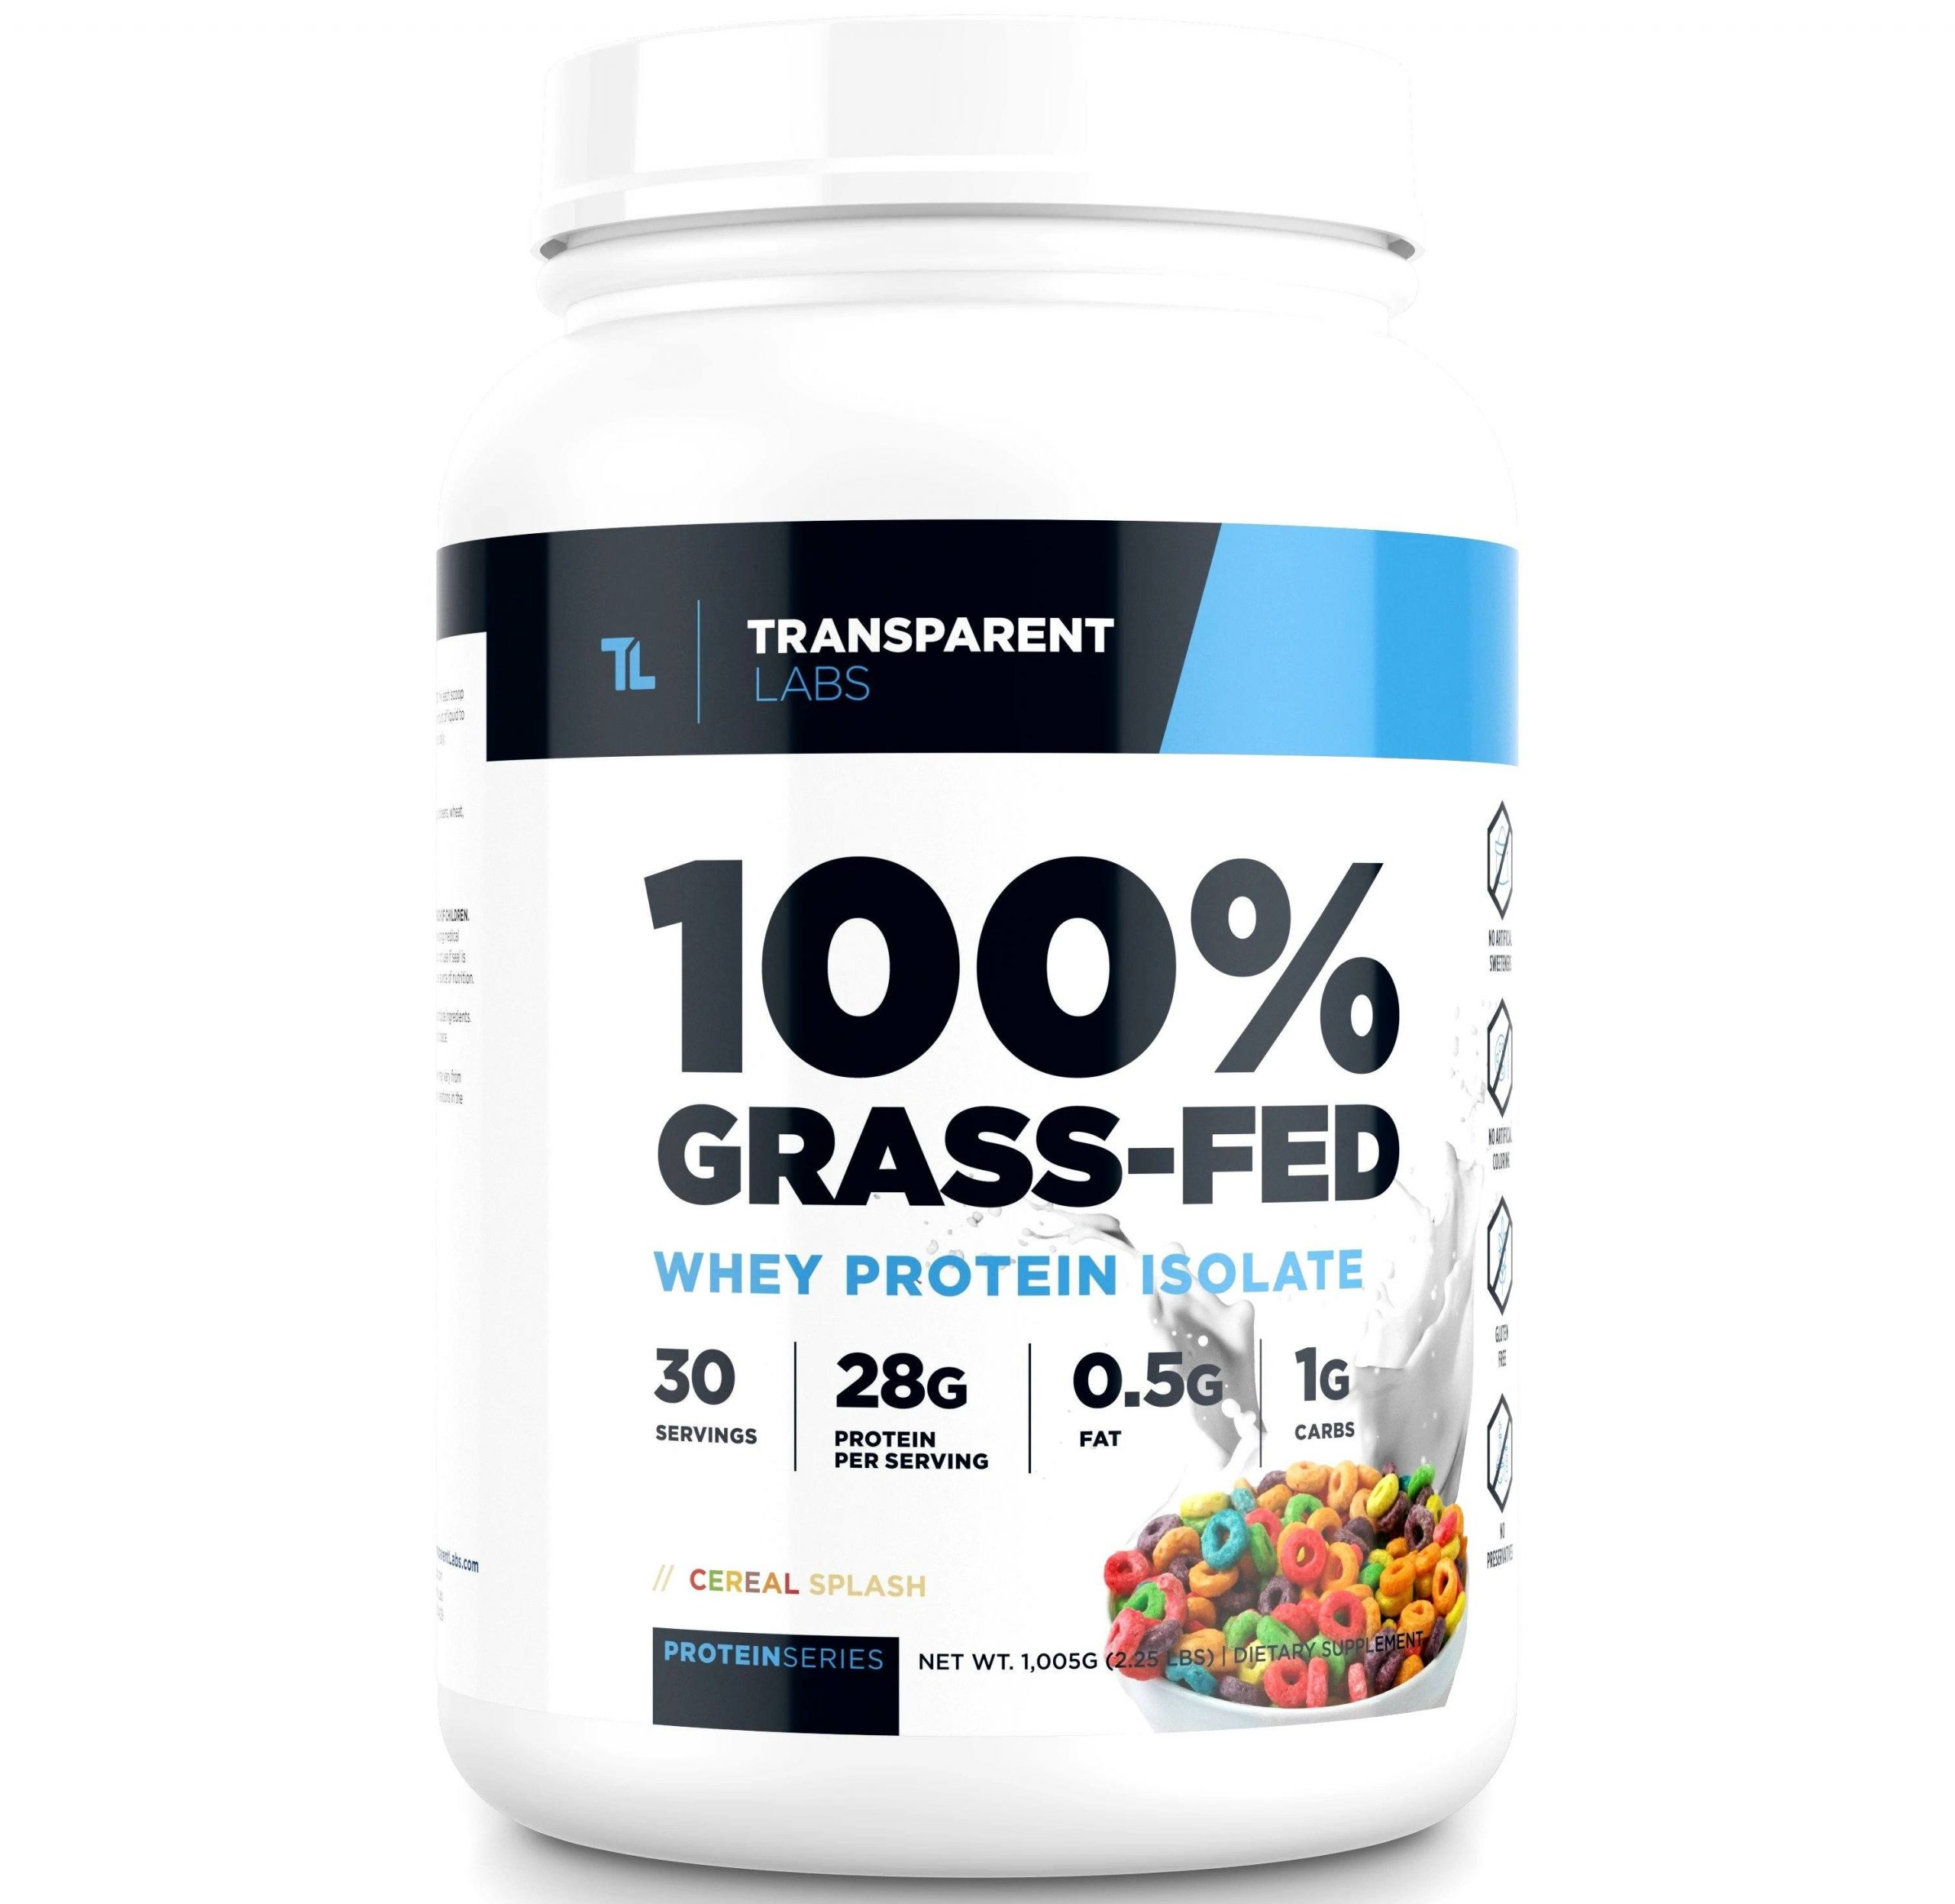 Grass Fed Transparent Labs